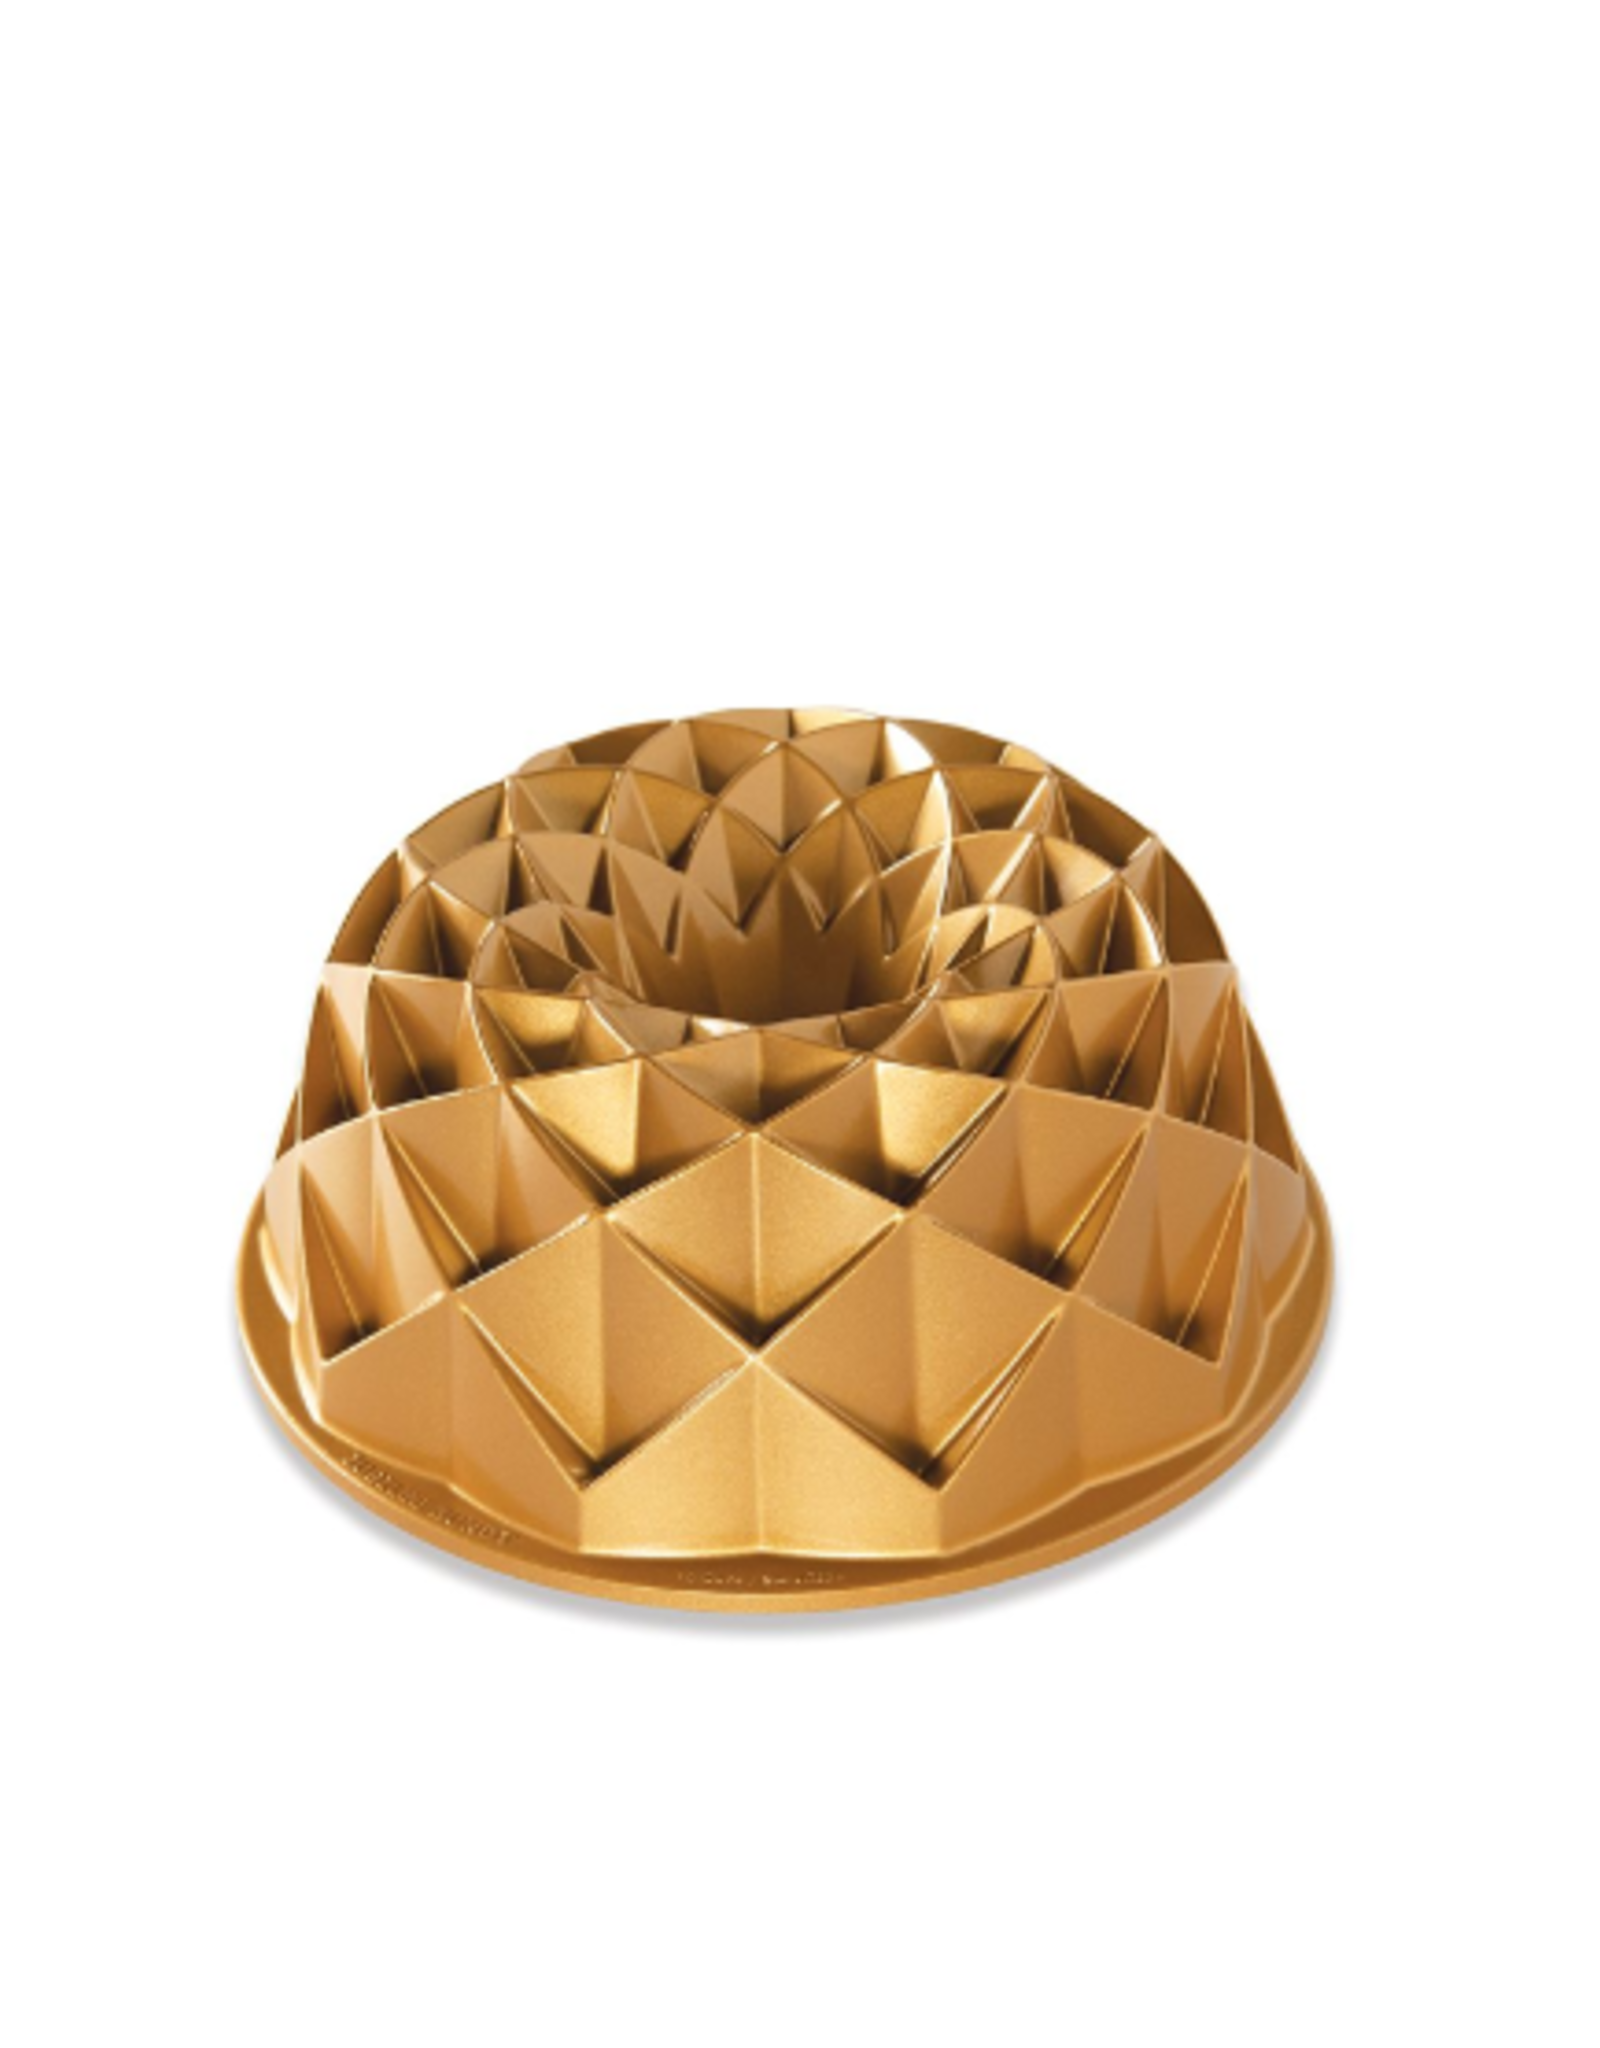 Nordicware Jubilee Bundt Pan, Gold Collection